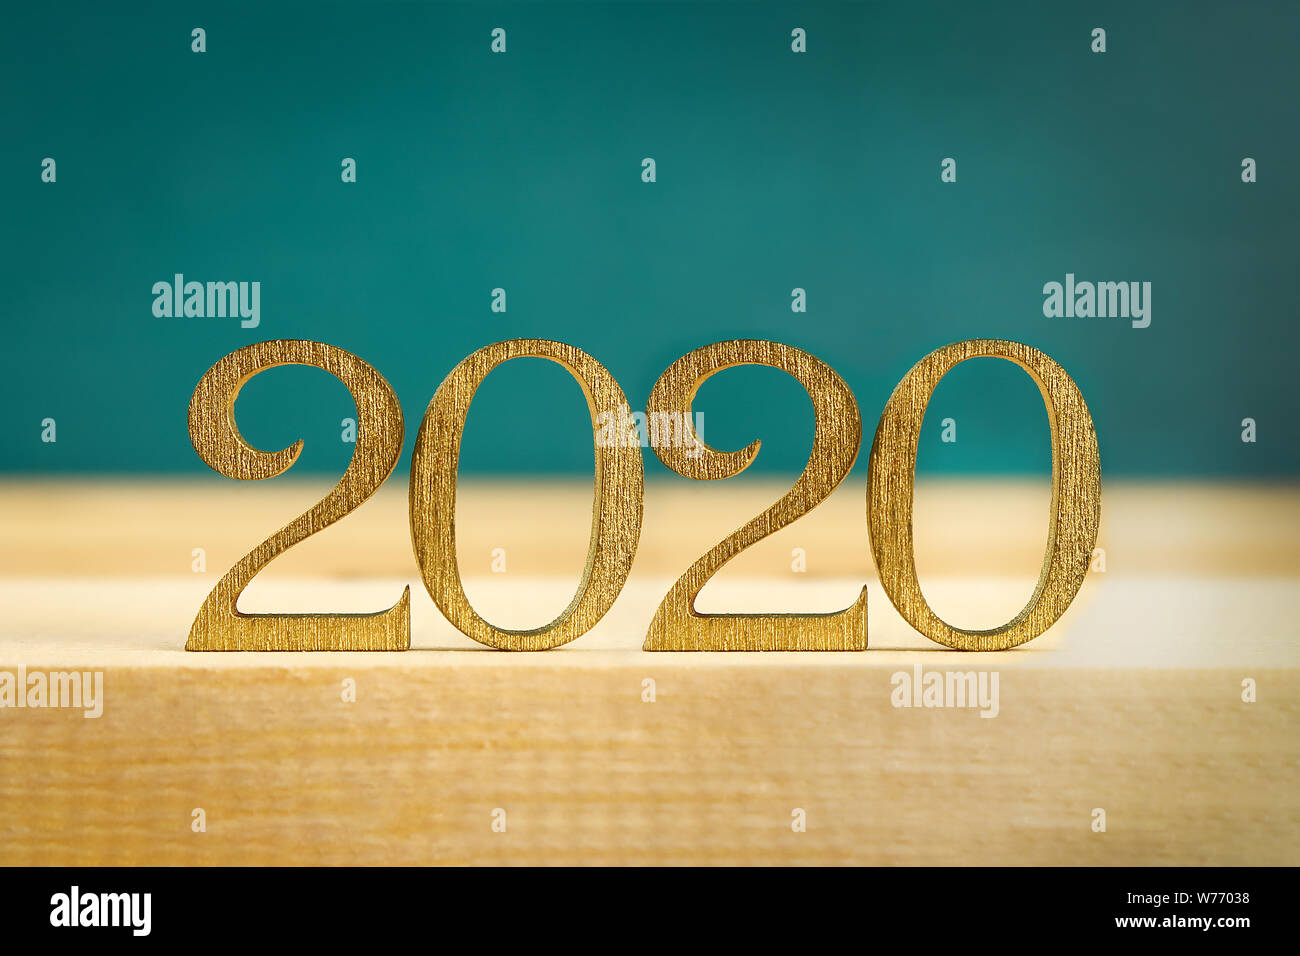 Merry Christmas And Happy New Year 2020 Writing Happy New Year 2020. Creative text Happy New Year 2020 written in